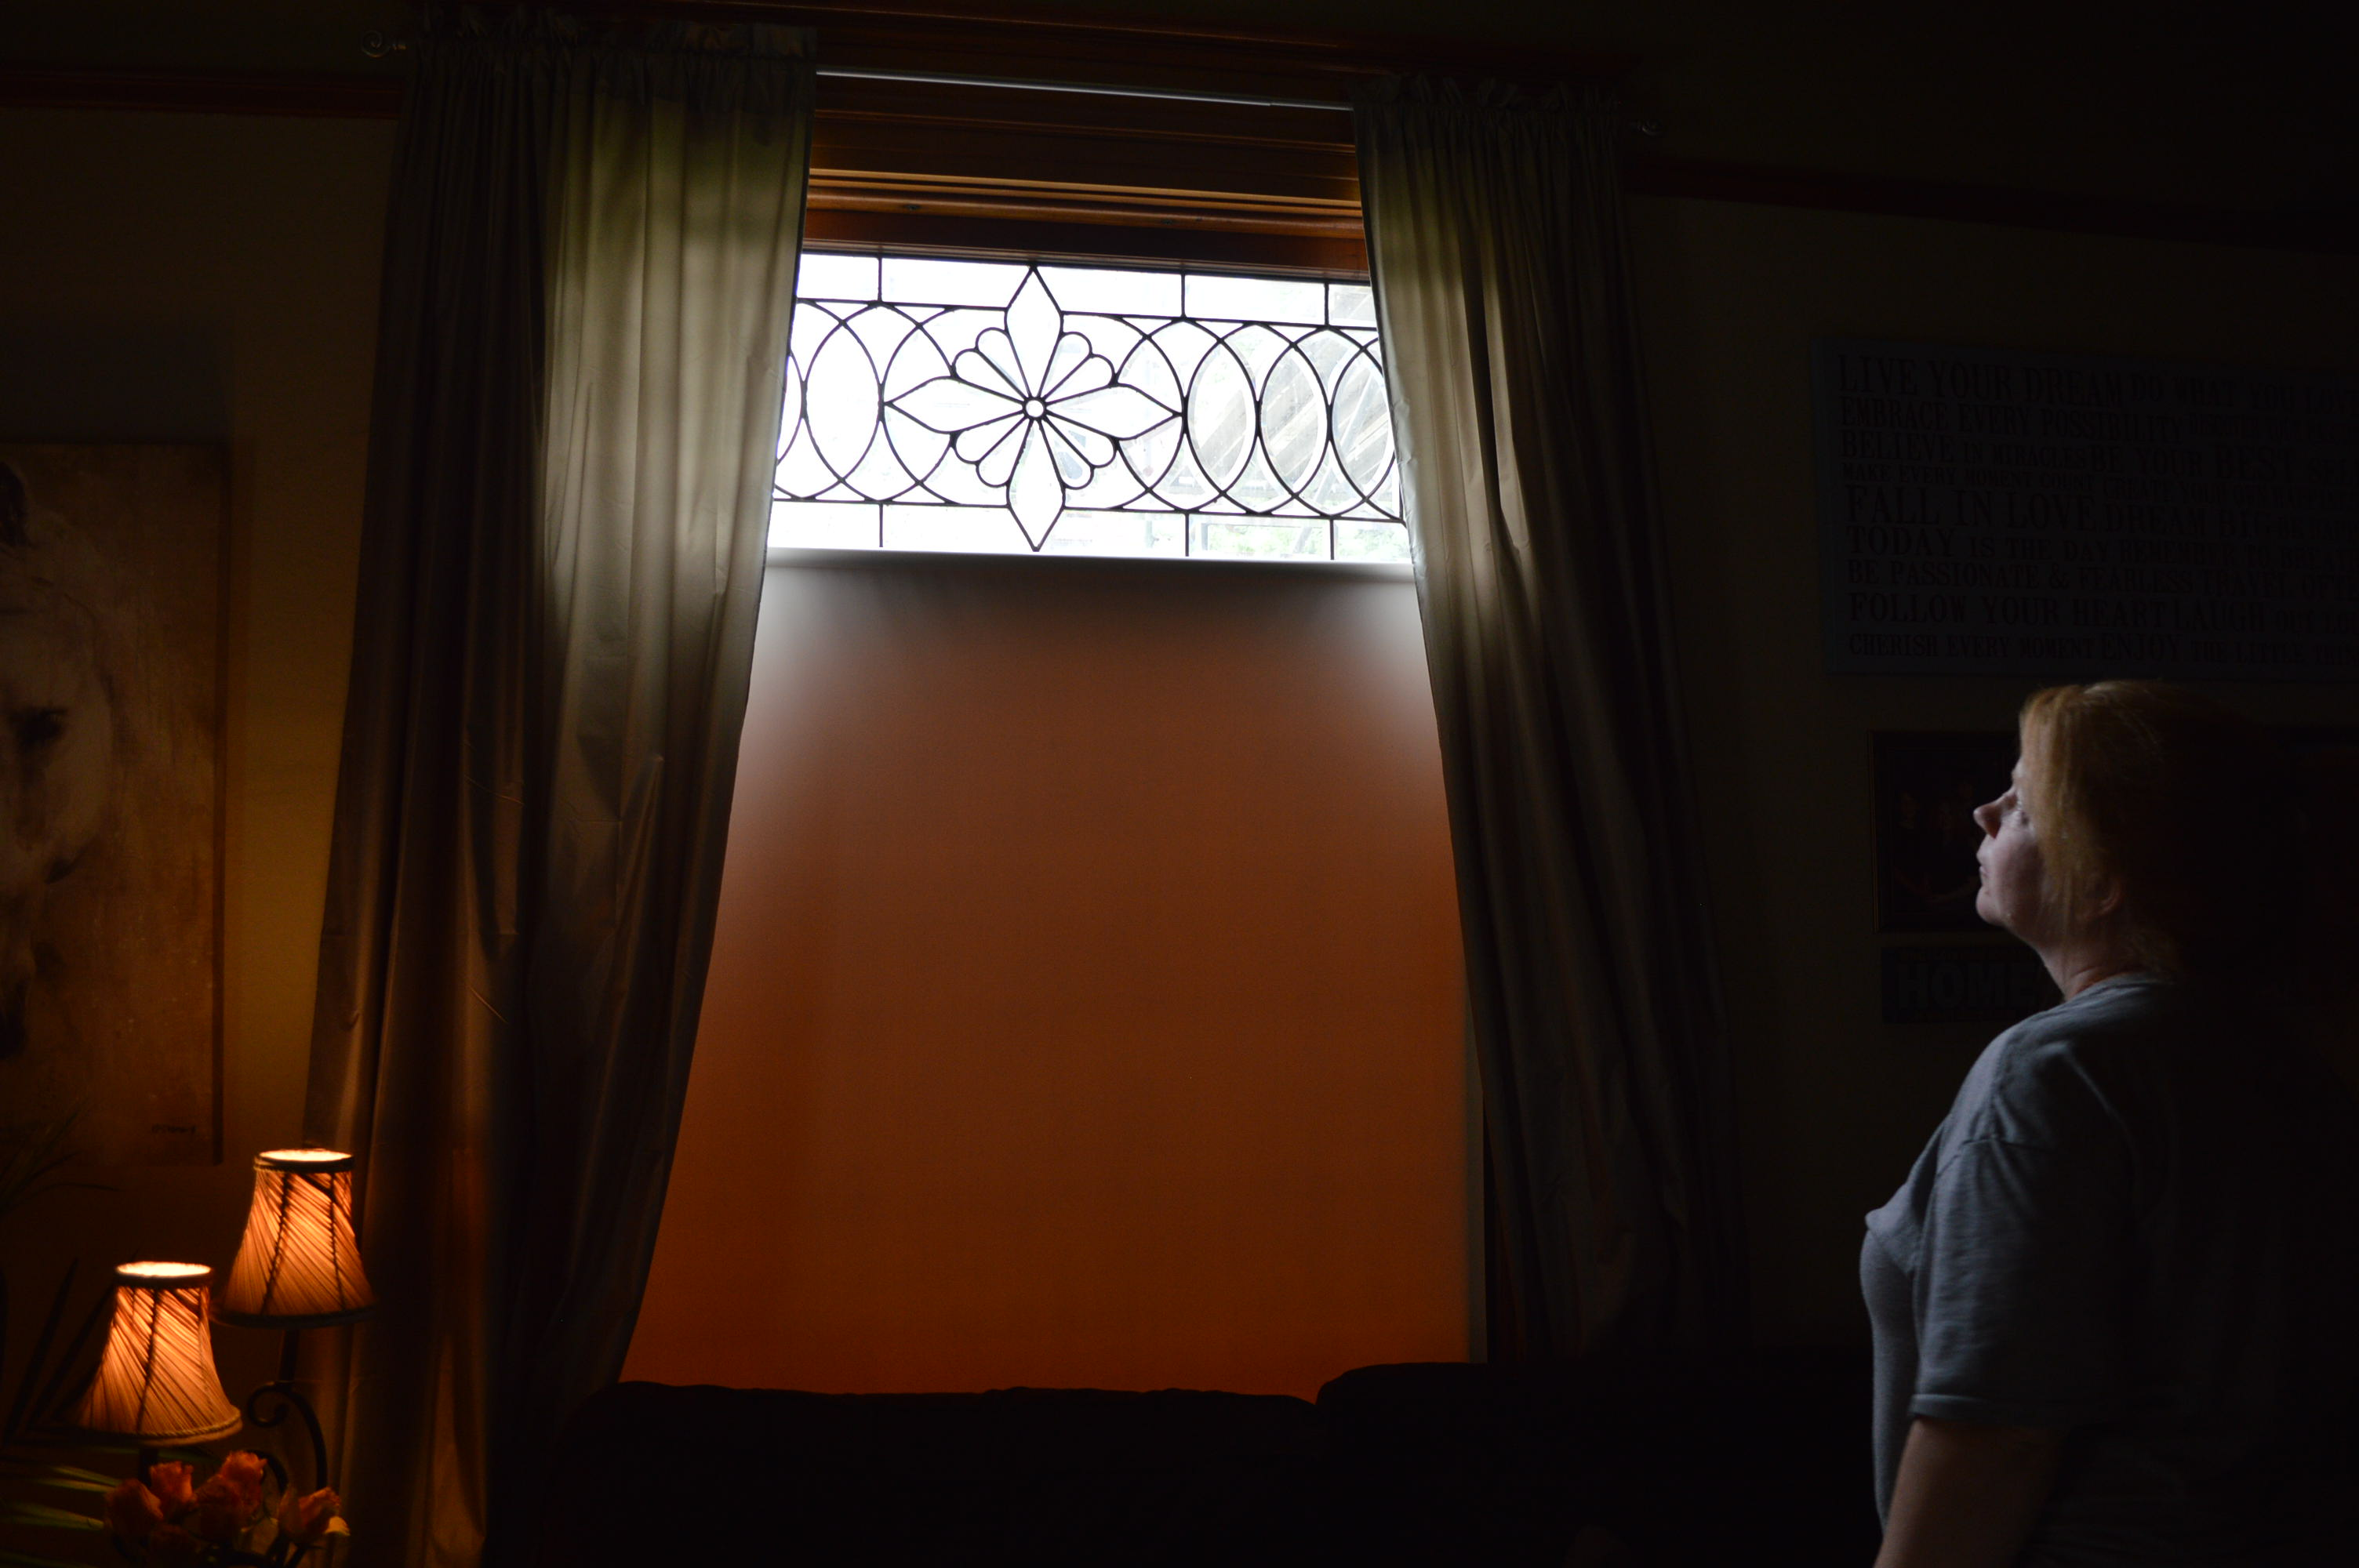 Tamara Dallege looks at a window of the Victorian house she purchased in southeast Cedar Rapids. She could face jail time that would jeopardize her teaching license if repairs are not made by Aug. 14, 2015. (photo/Cindy Hadish)